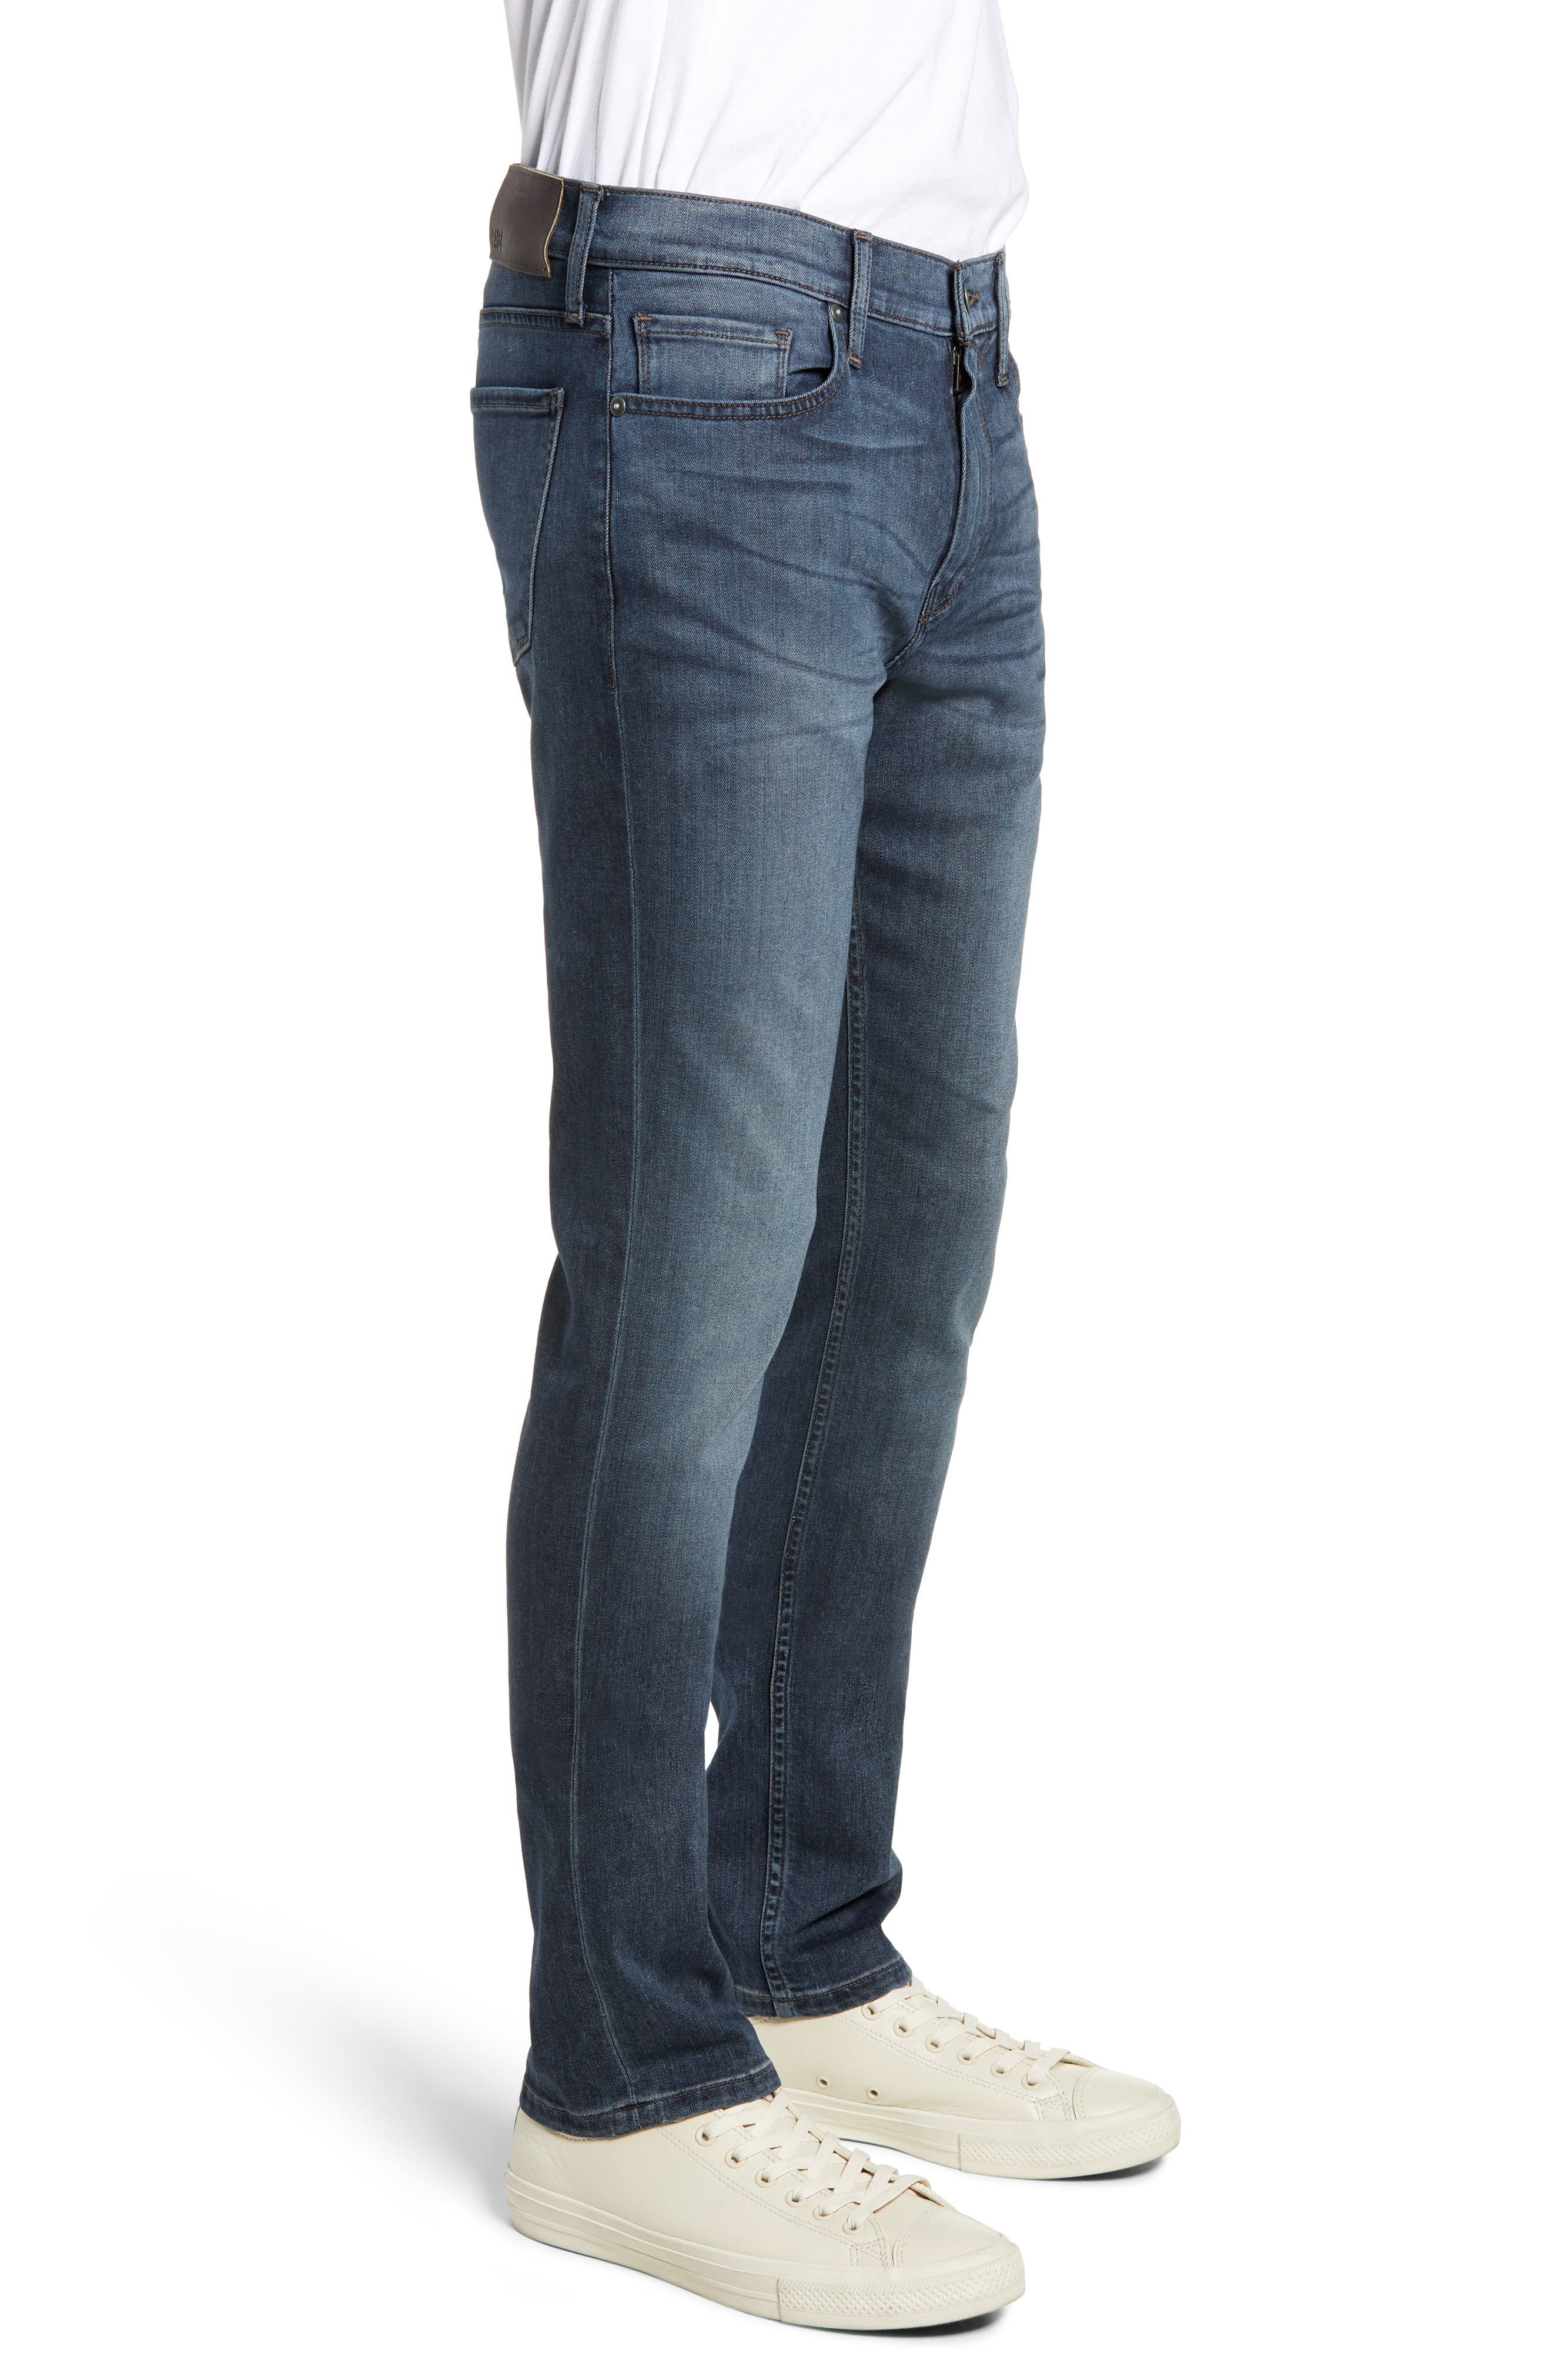 PAIGE,                             Transcend - Federal Slim Straight Leg Jeans,                             Alternate thumbnail 3, color,                             GARNER